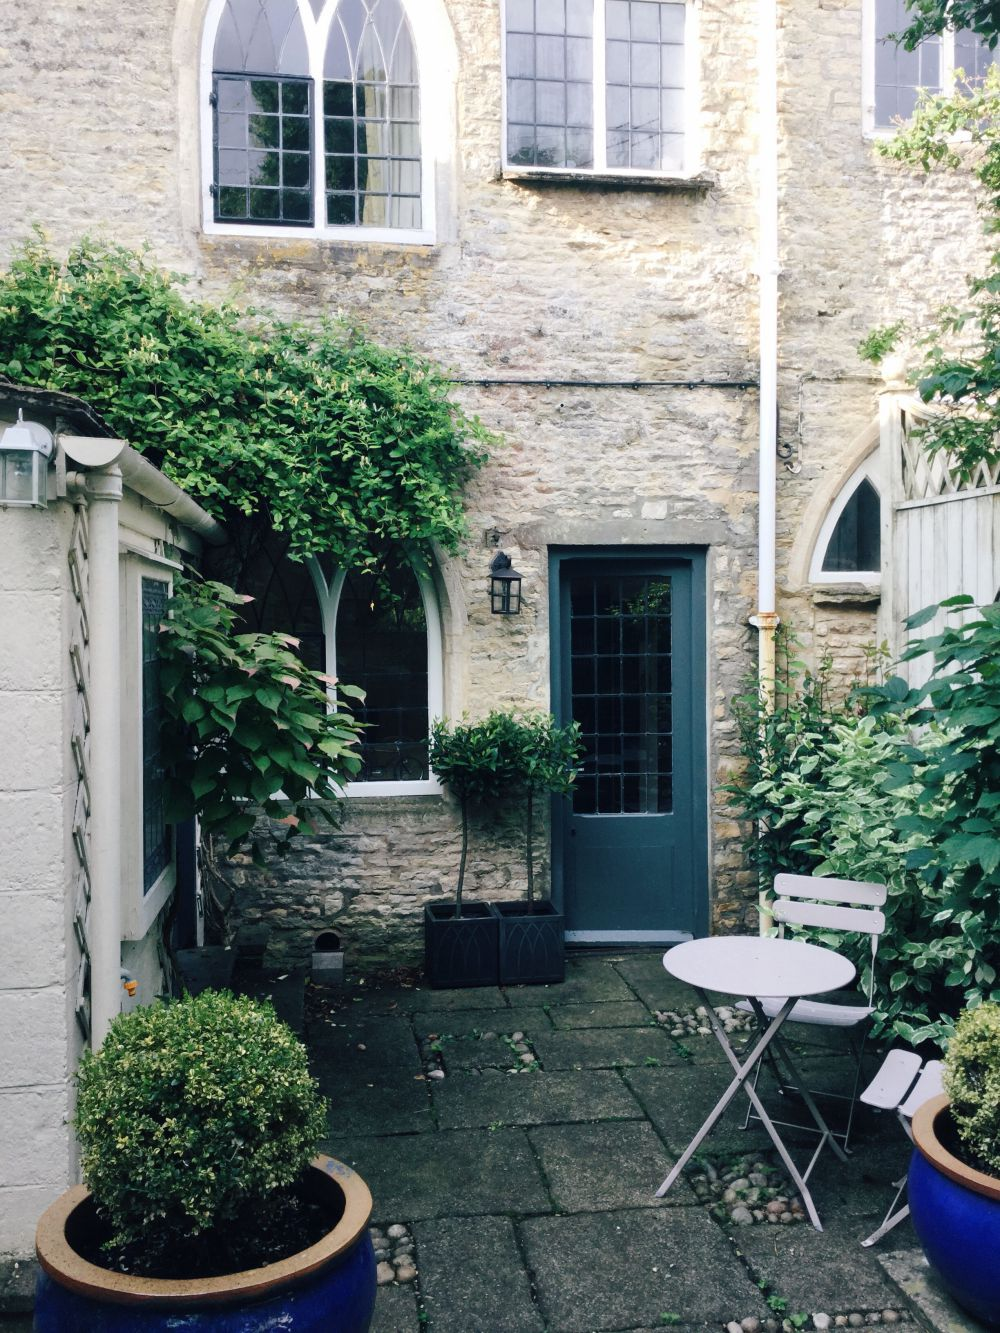 Our home for the week: Little Culver cottage in Minchinhampton